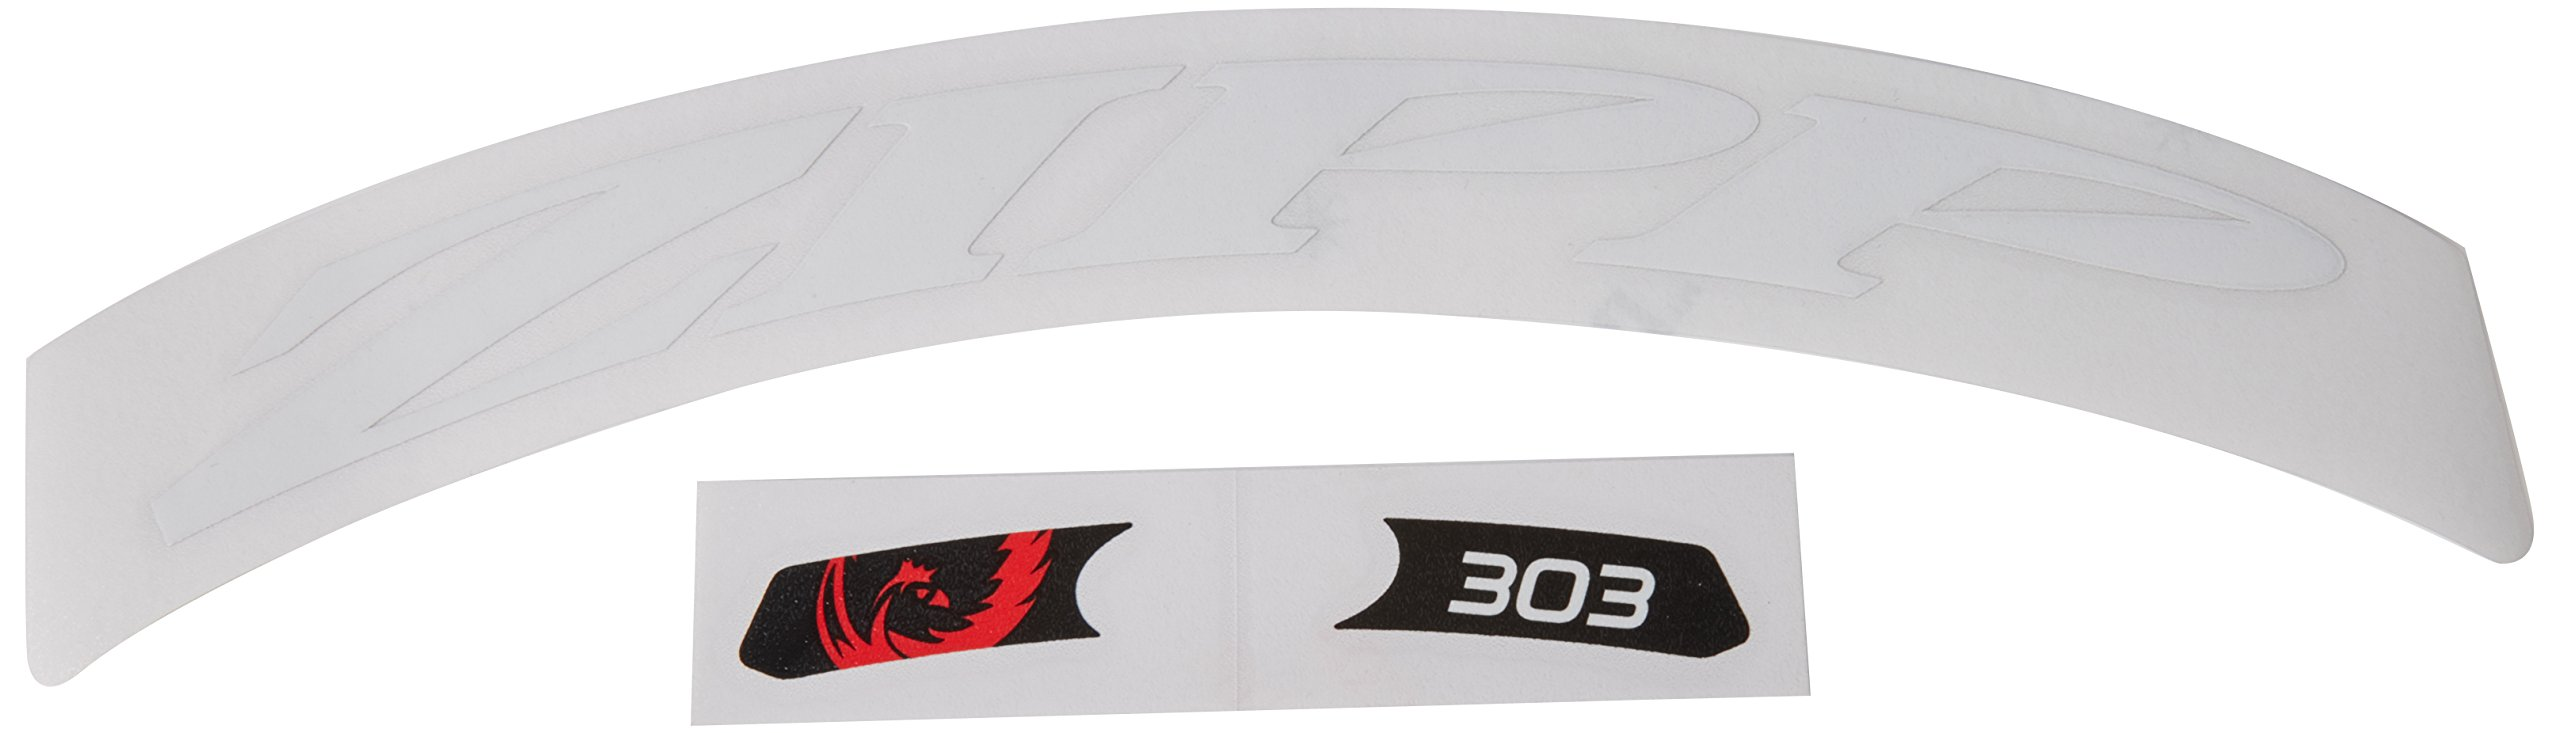 303 Matte Red Logo Zipp Decal Set Complete for One Wheel